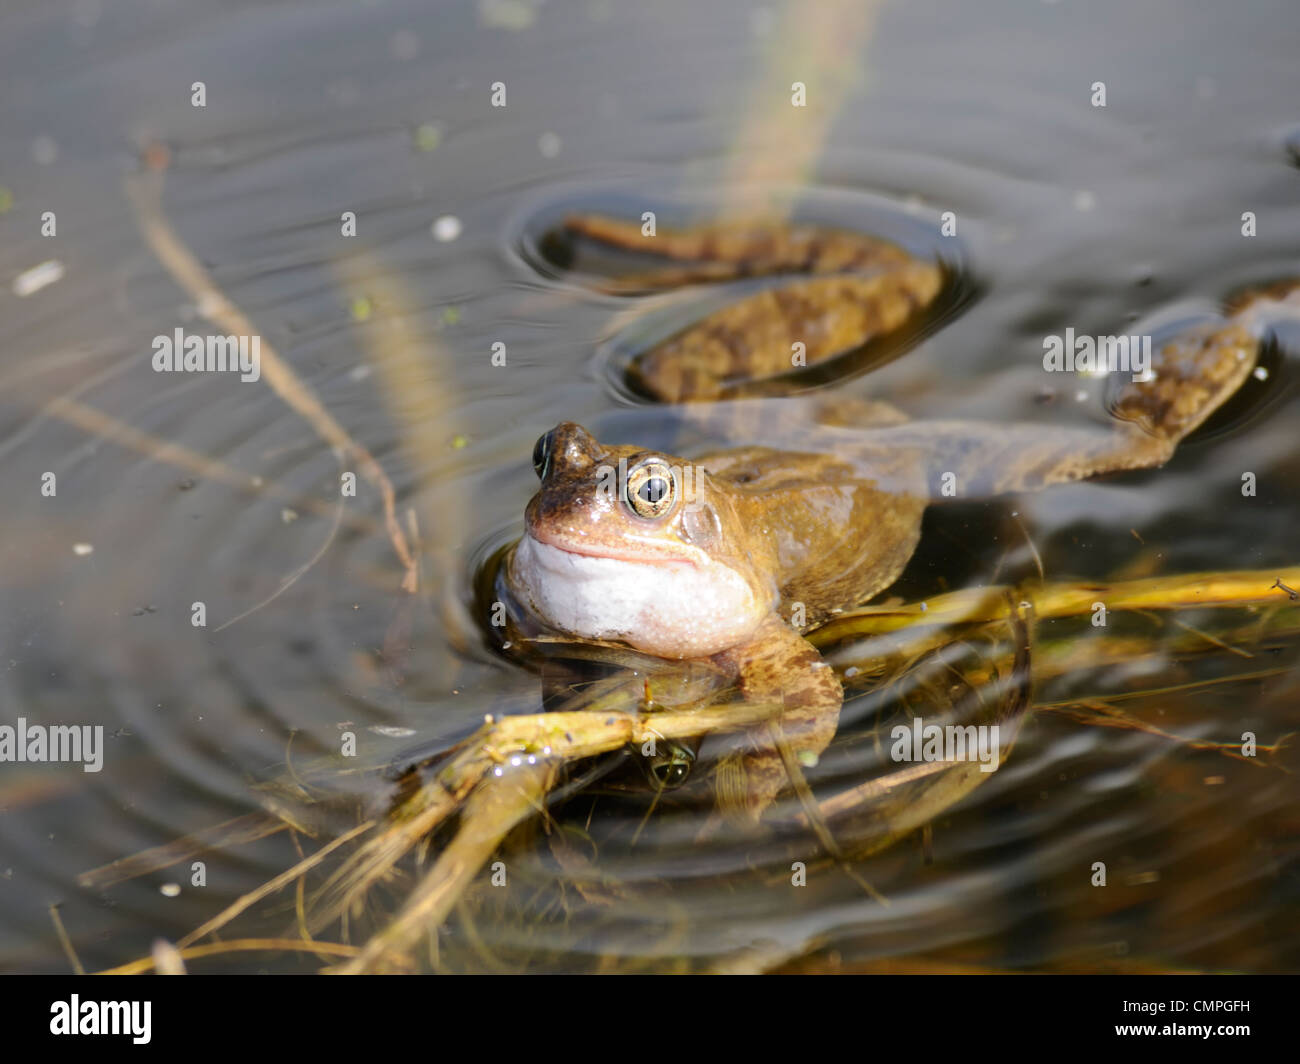 A common frog ( Rana temporaria ) lying on the surface of a pond - Stock Image